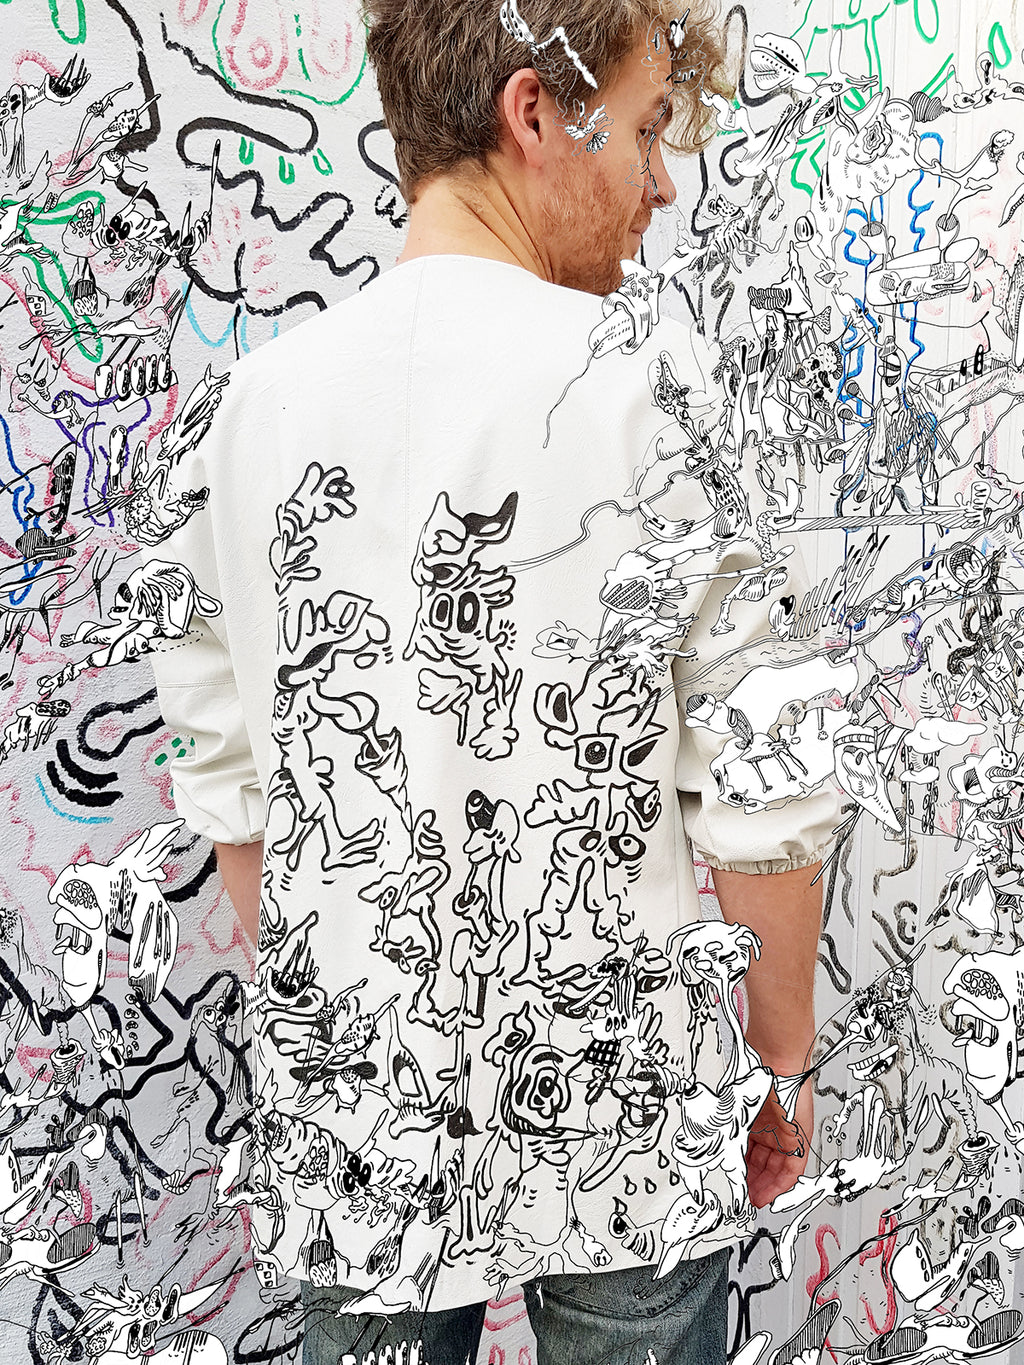 Jook doodle jacket - unique piece - original artwork - no print - size 40 - L